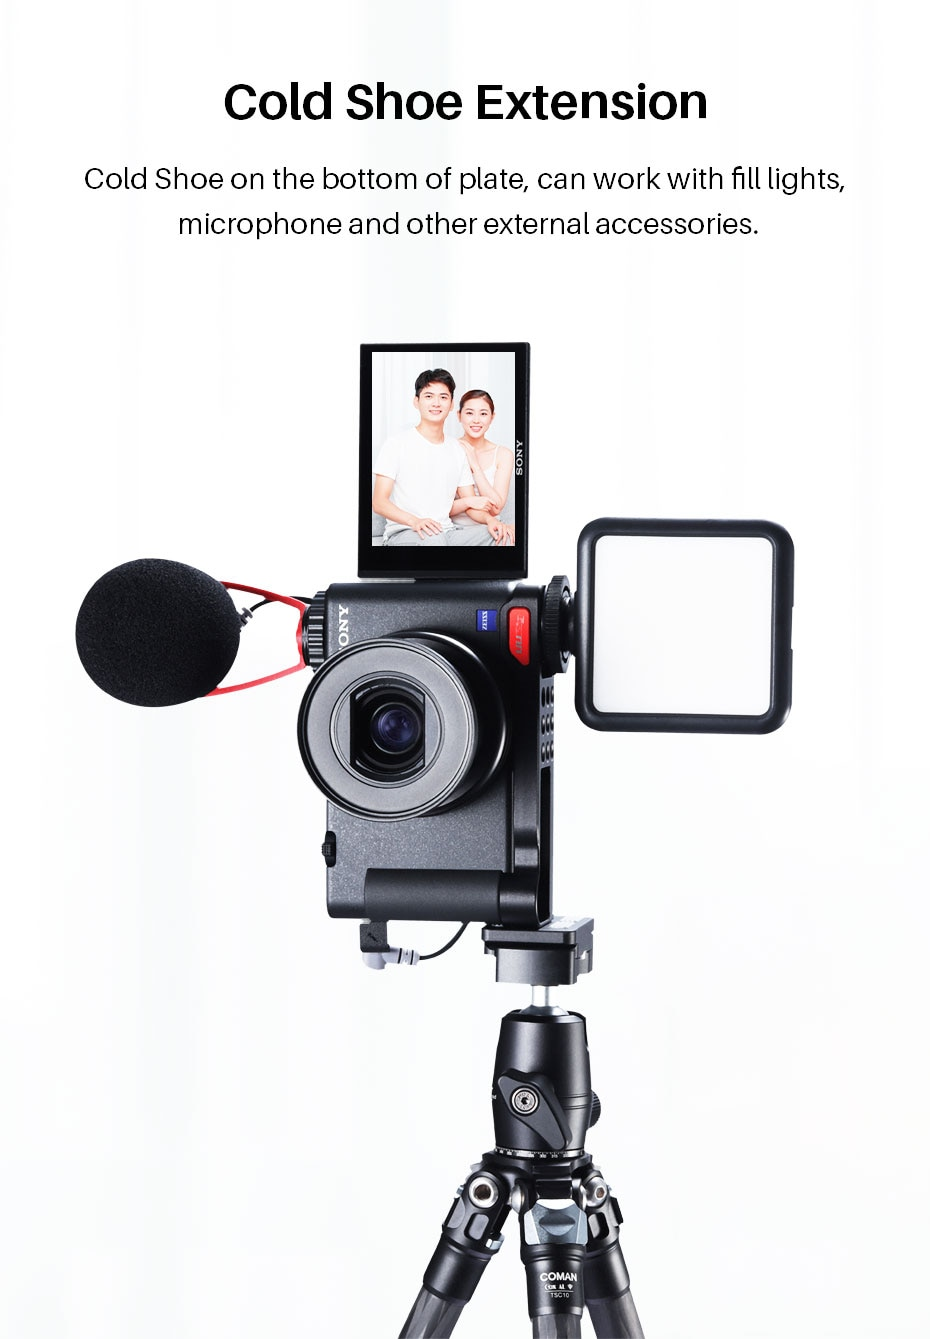 UURig R054 Base Plate Mount for Sony ZV1 Vertical Shooting Bracket Vlog Mount with Cold Shoe for Microphone Led Light